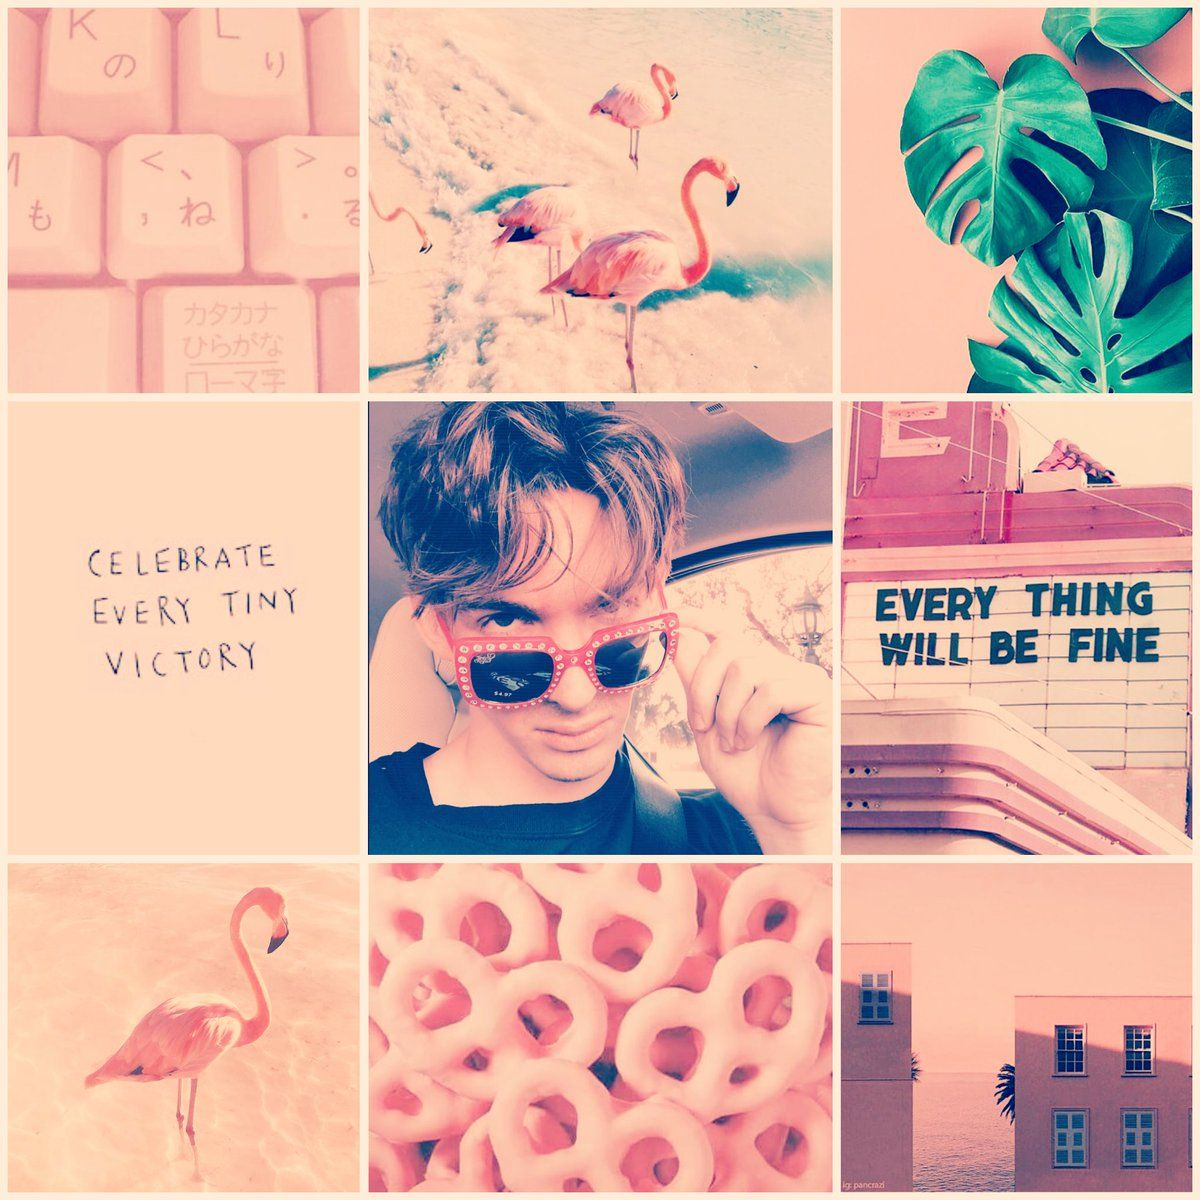 Oh S More Alberto Aesthetic 3 Again By Shakelime Our Precious